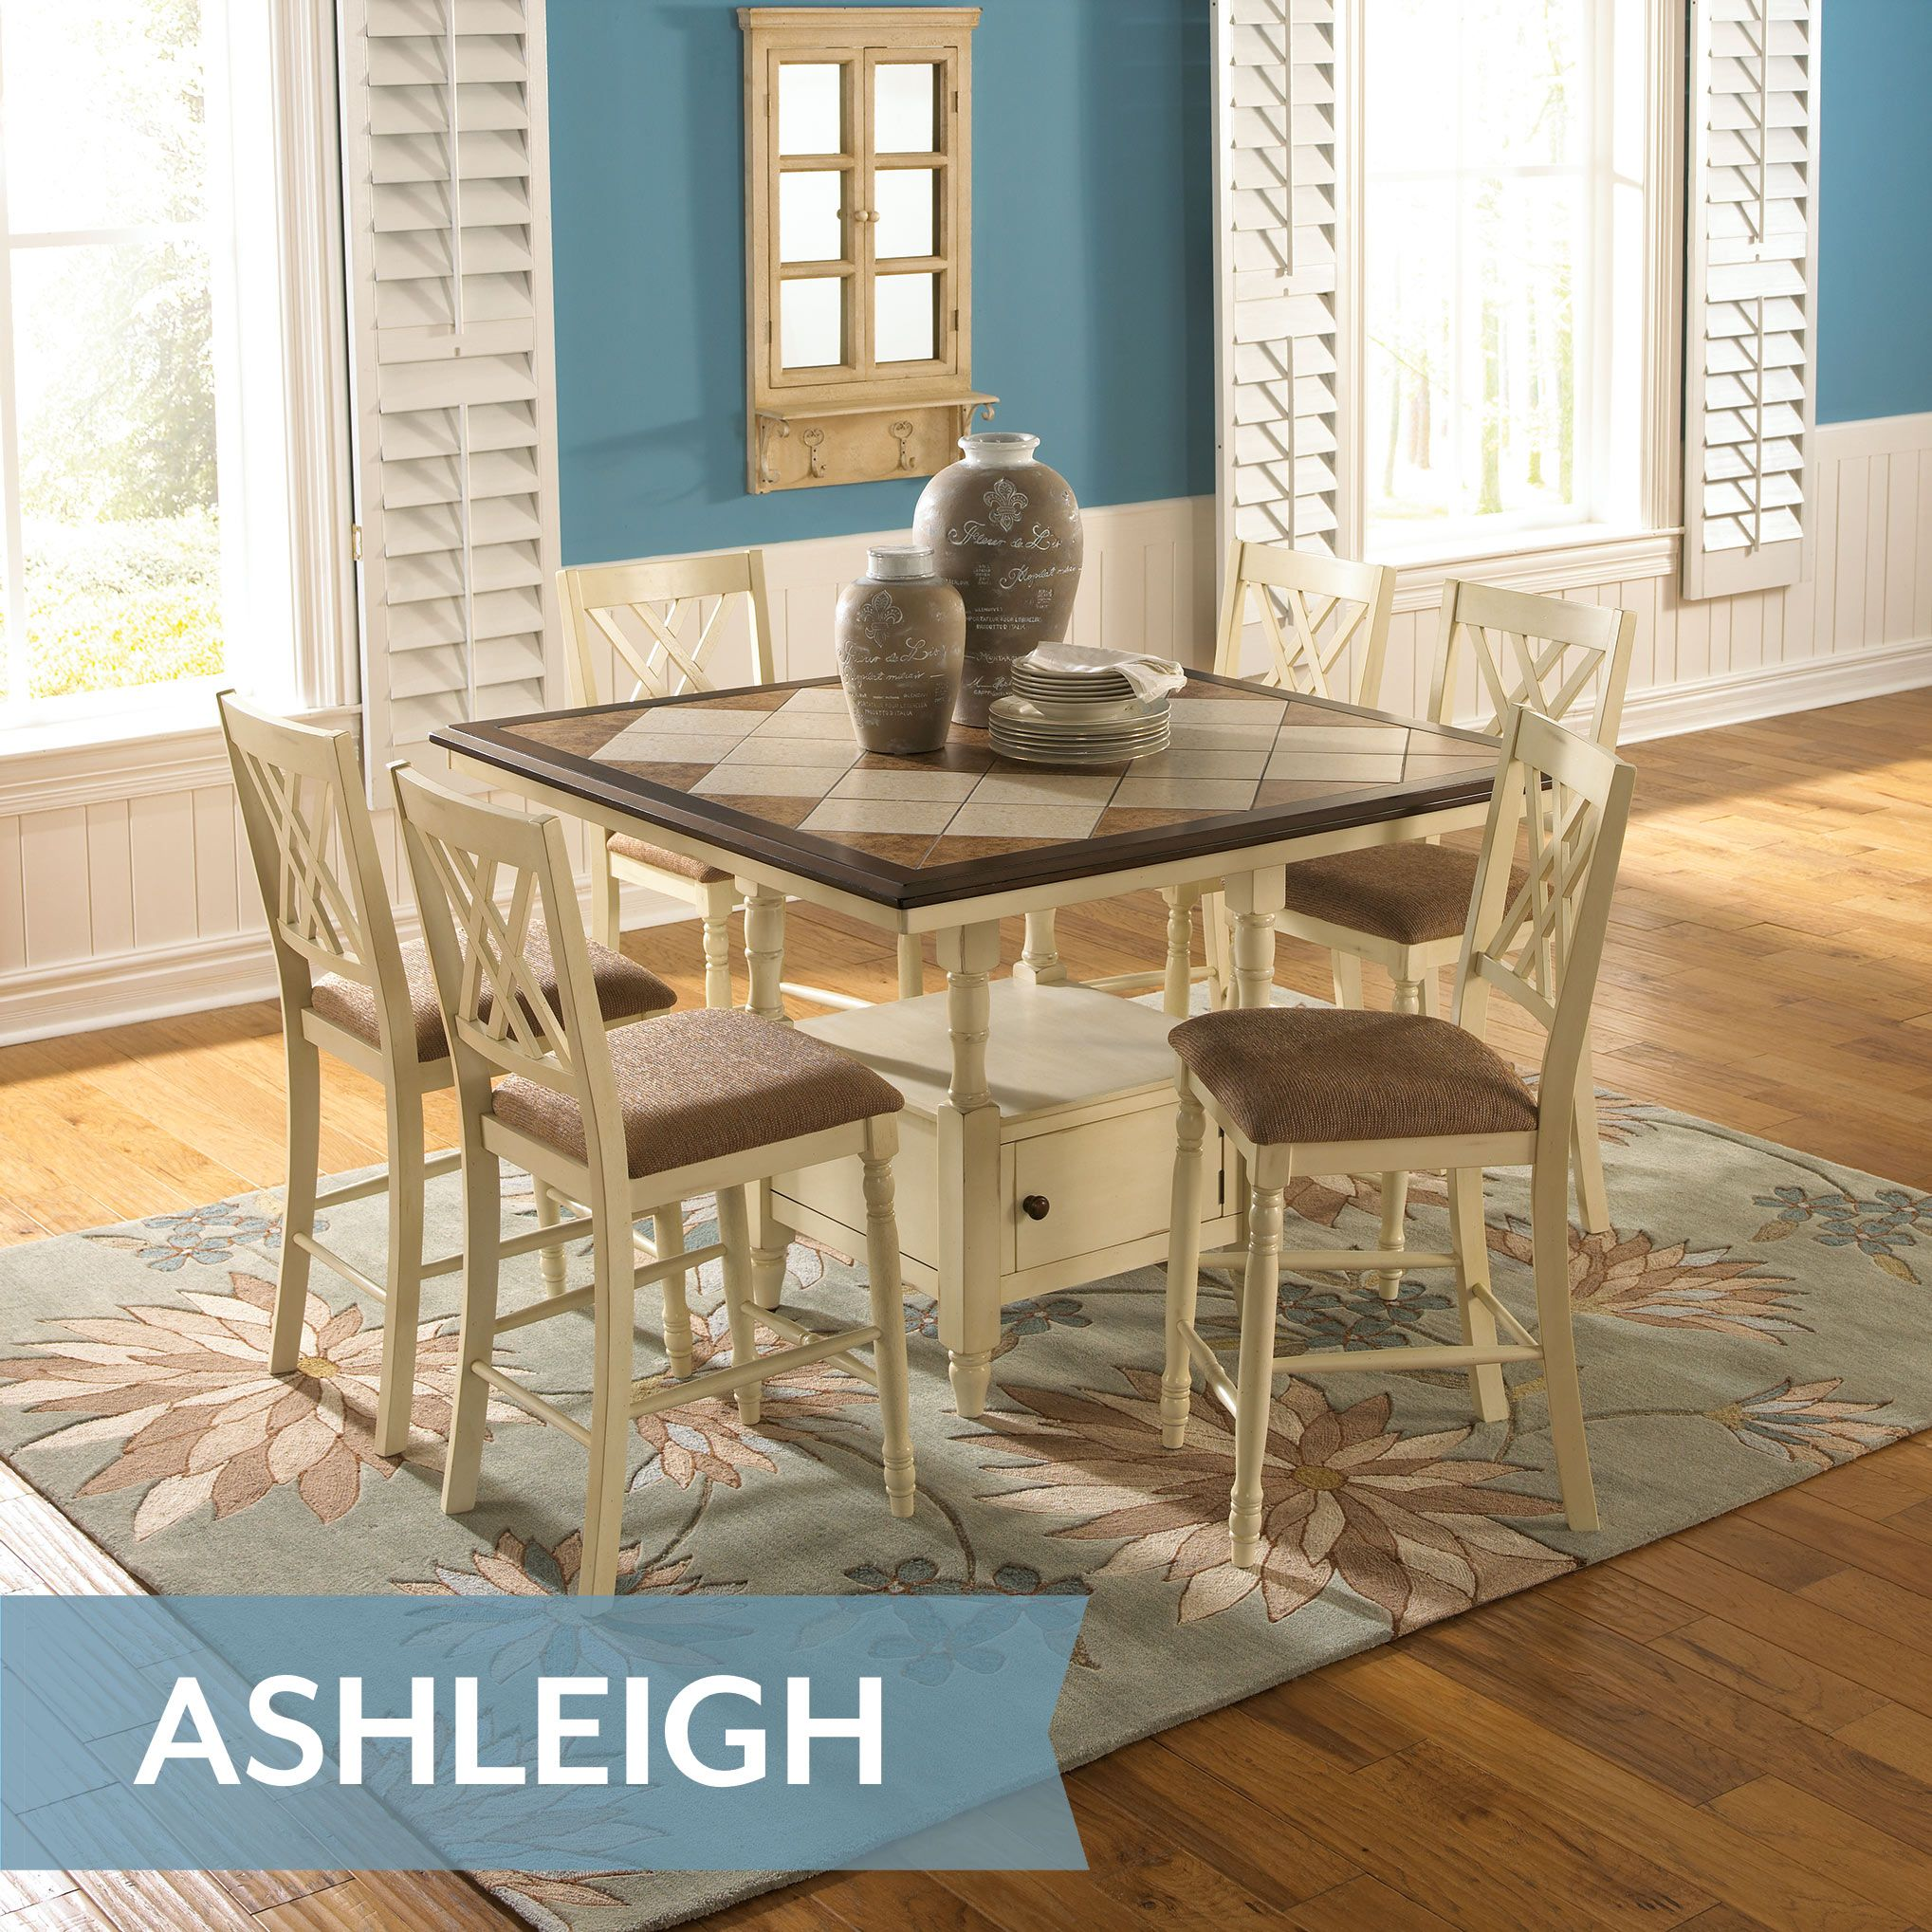 Ashleigh Dining Room Dining Room Sets Dining Furniture Furniture